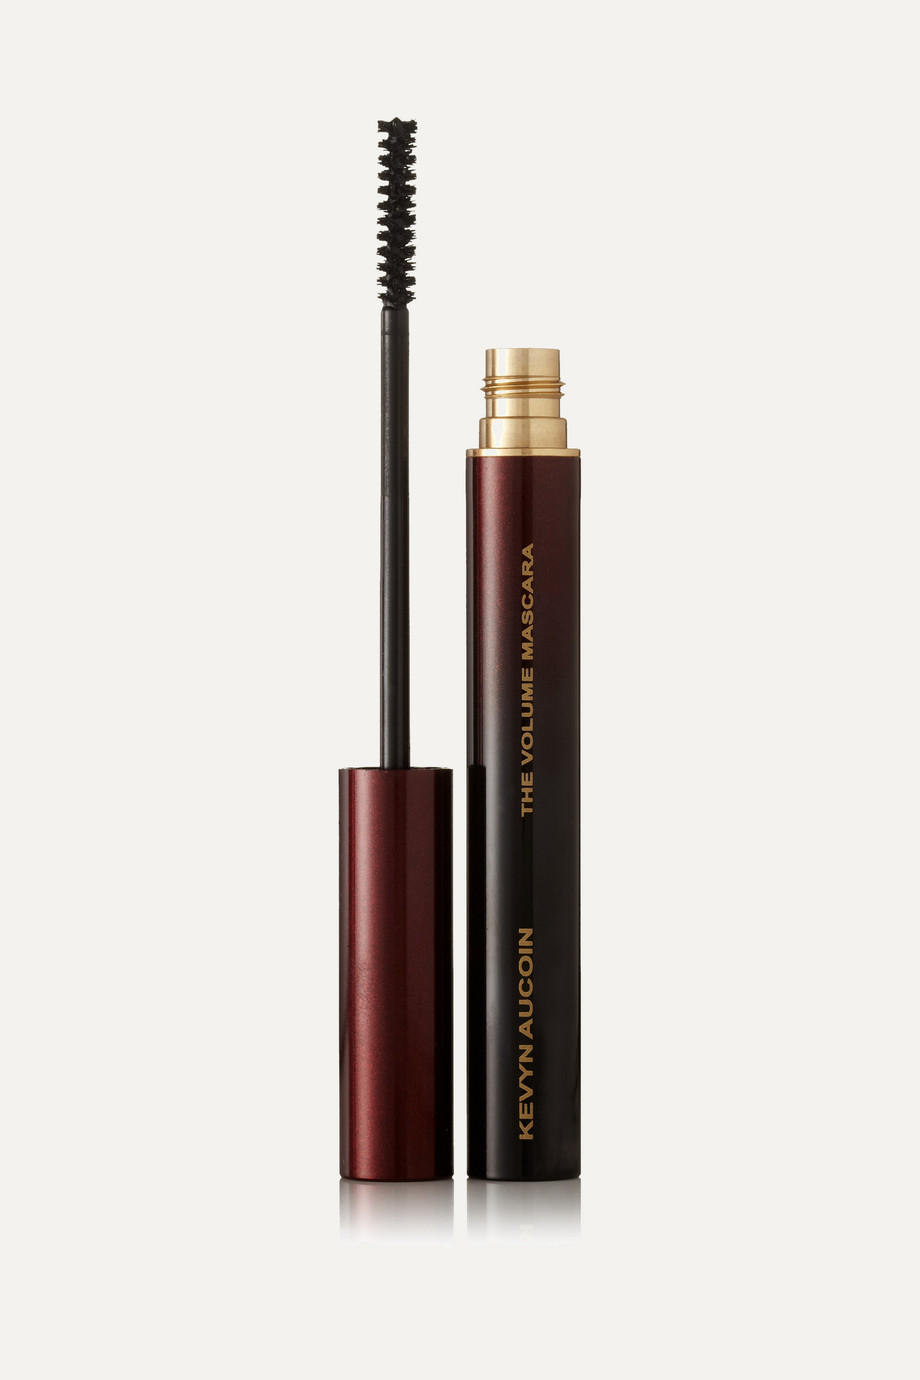 Kevyn Aucoin The Volume Mascara – Rich Pitch Black – Mascara